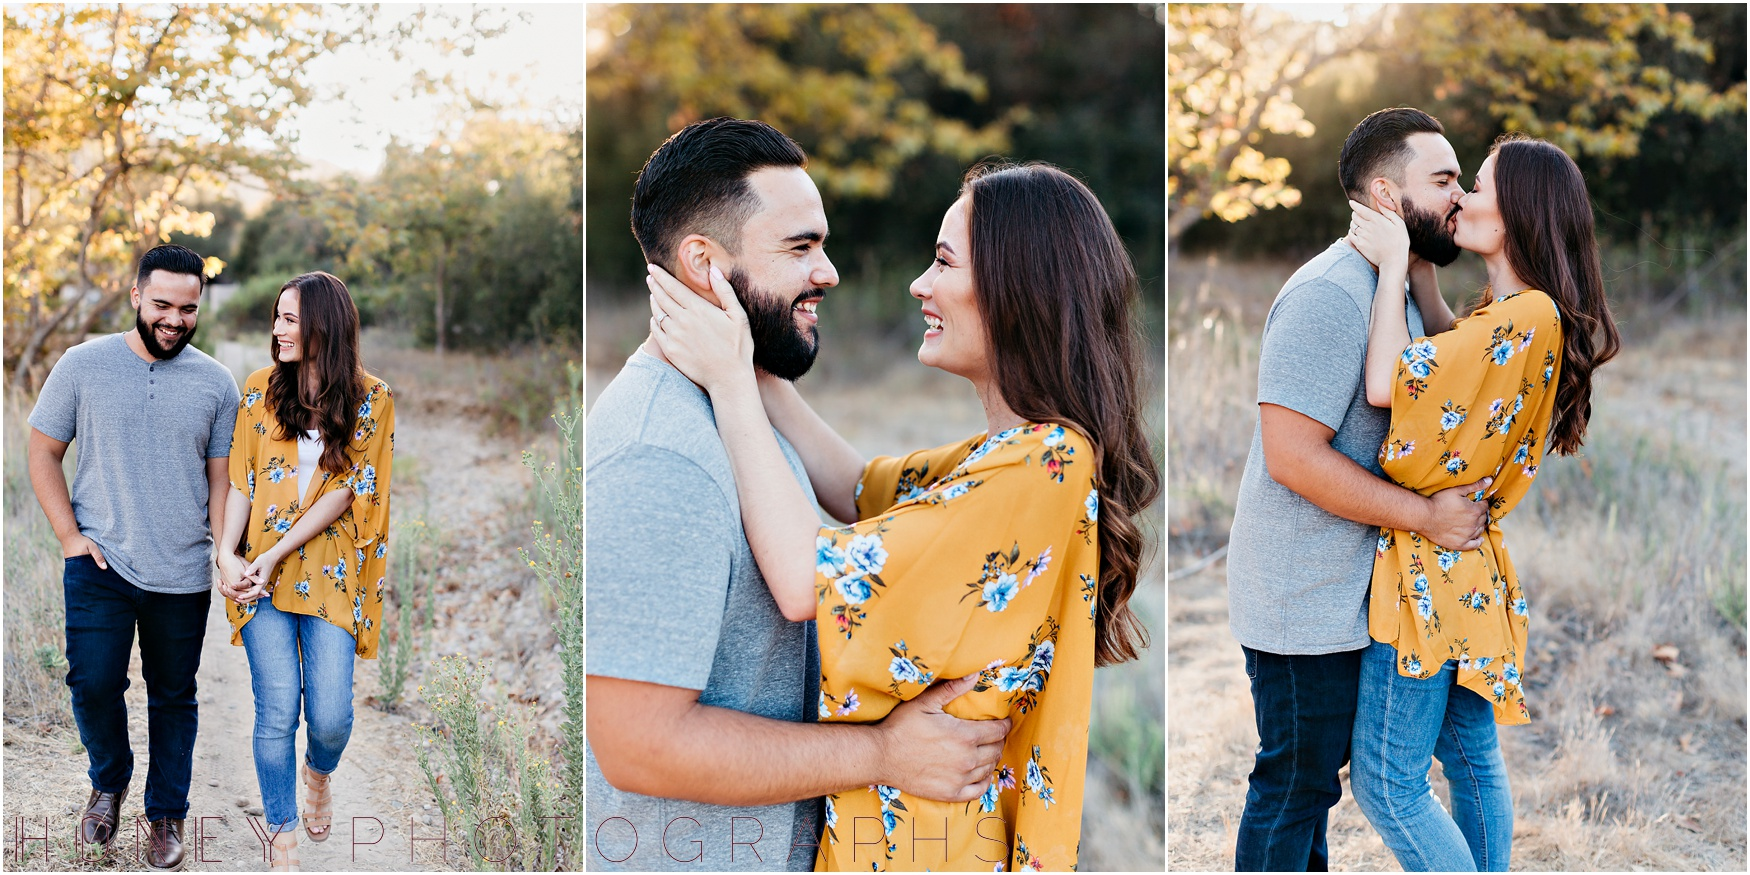 marian_bear_sunset_woods_san_diego_engagement002.jpg